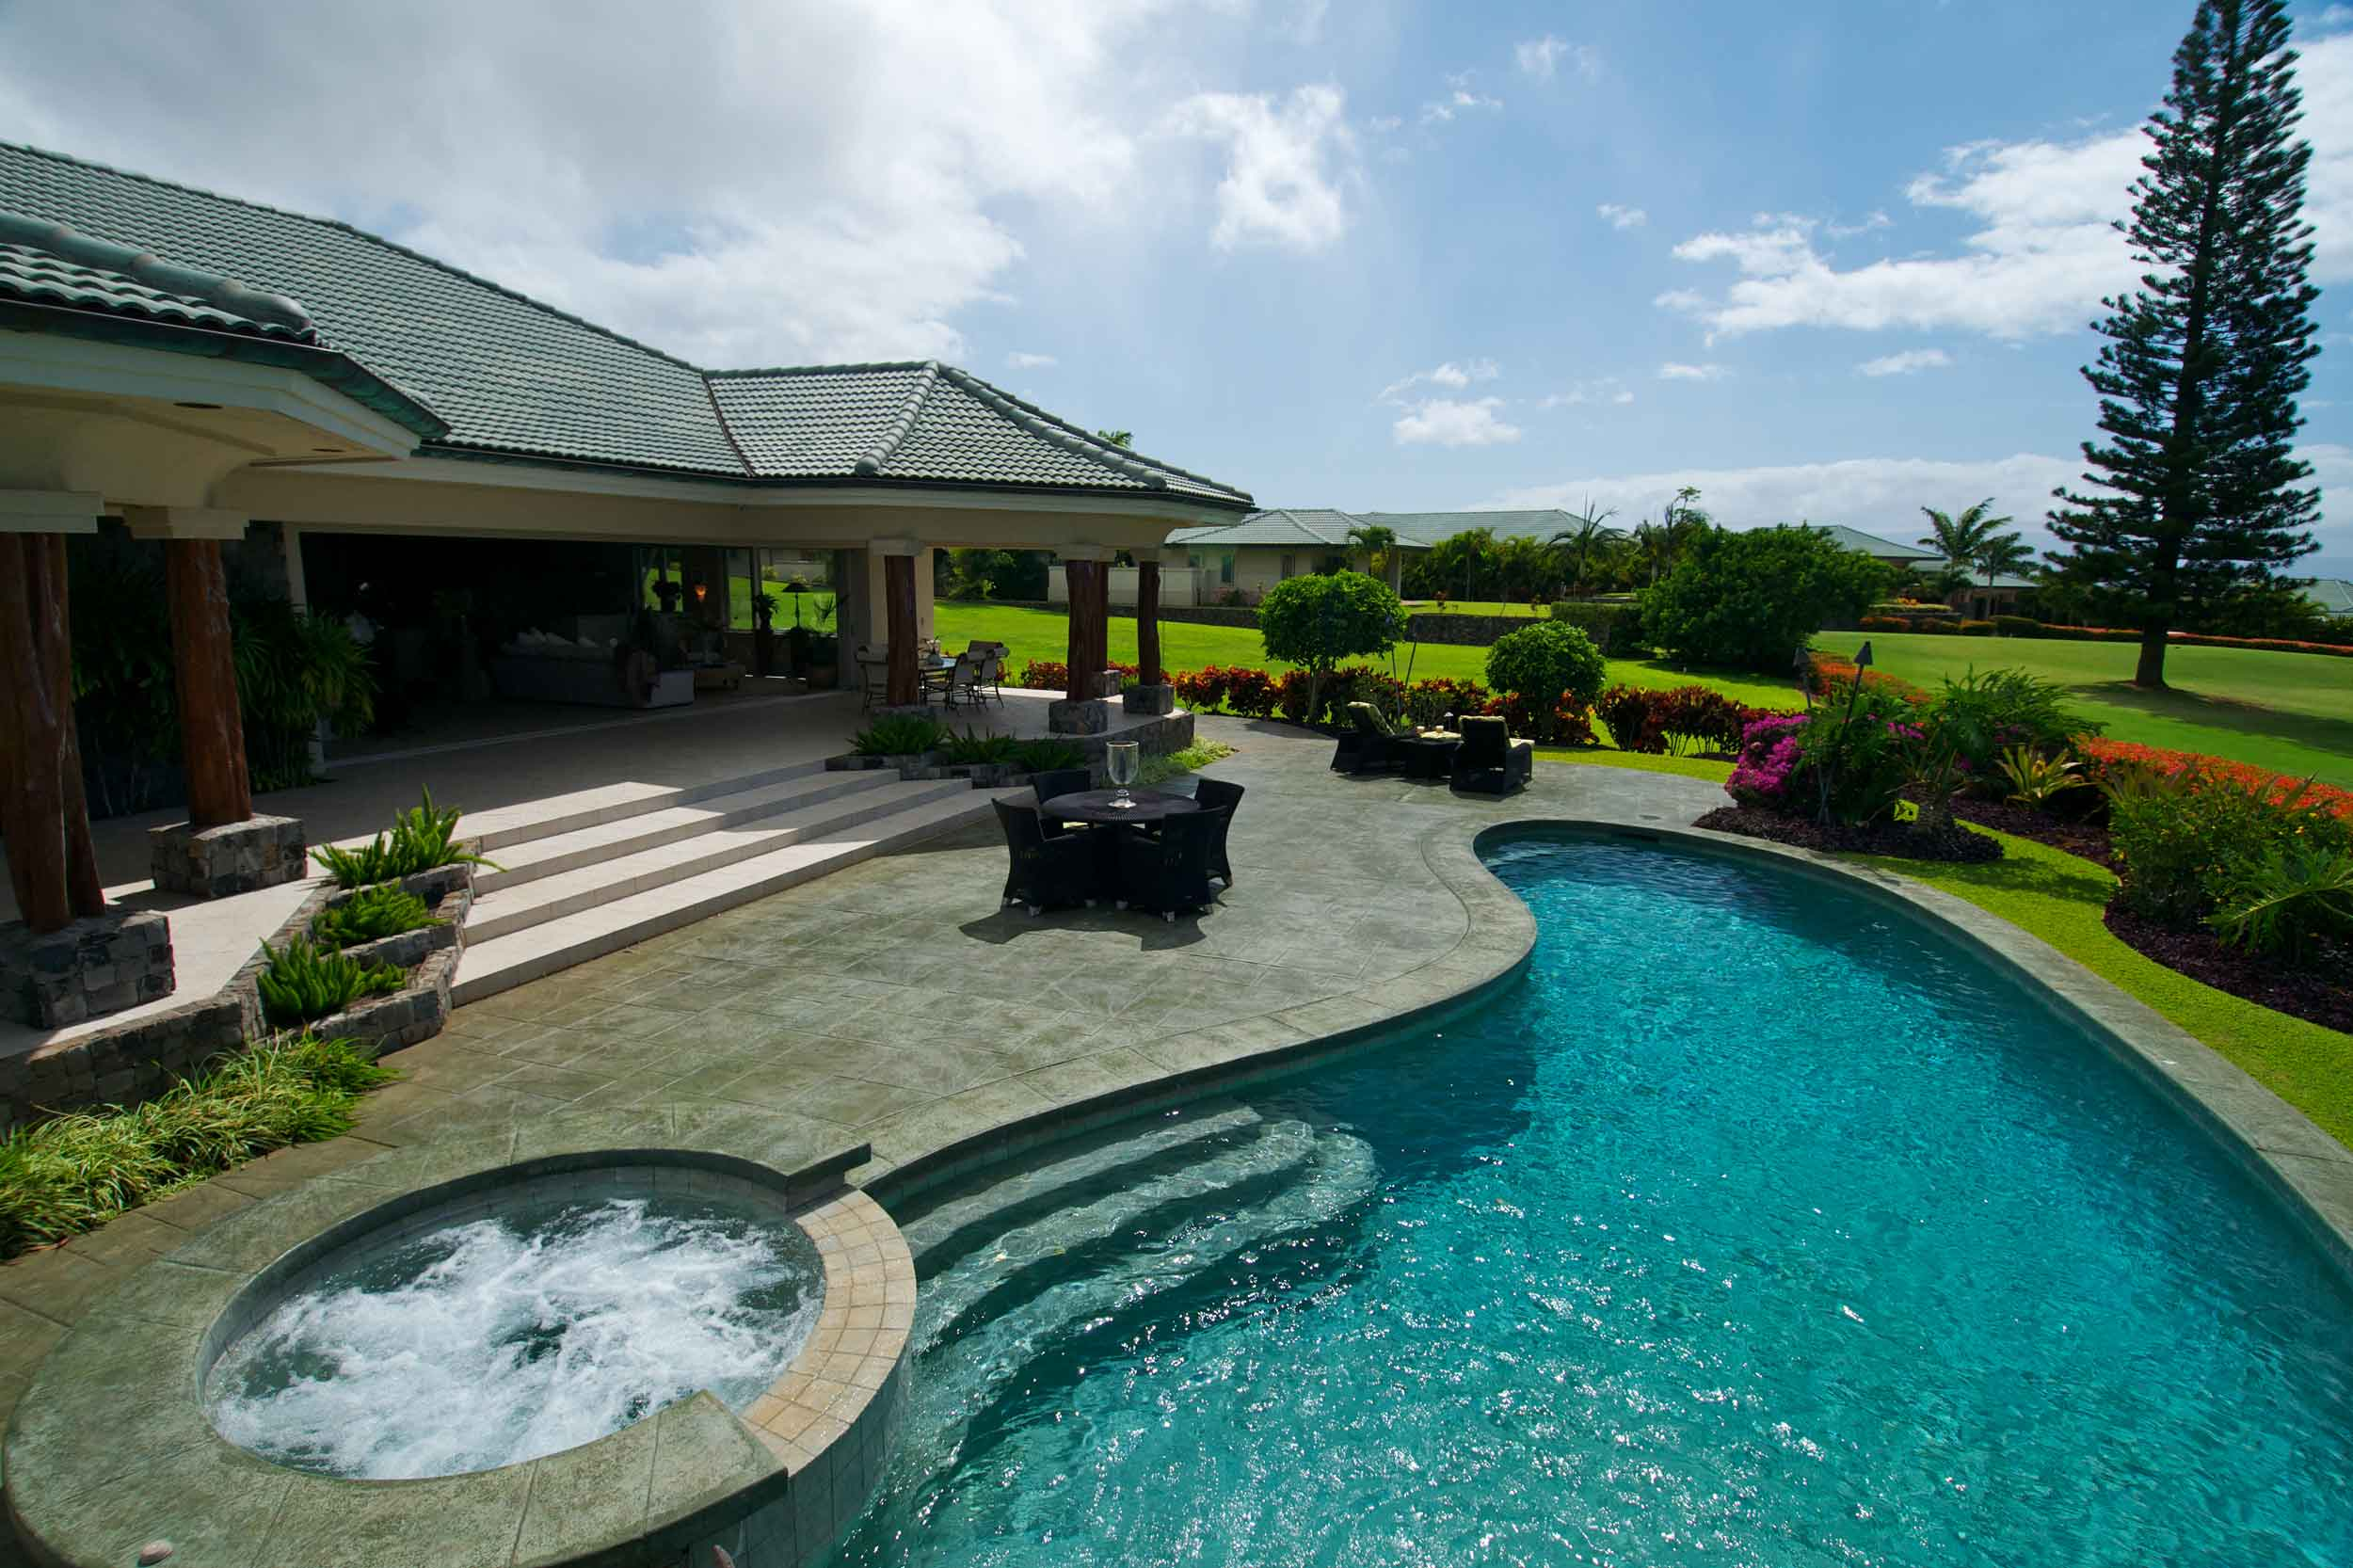 This tropical retreat is in one of the top golf resorts in the world. Kapalua, on the island of Maui boasts two championship courses: the Bay Course, which has hosted over 20 major professional tournaments, and the Plantation Course, the top-ranked course in Hawaii and the site of the PGA's Tournament of Champions.